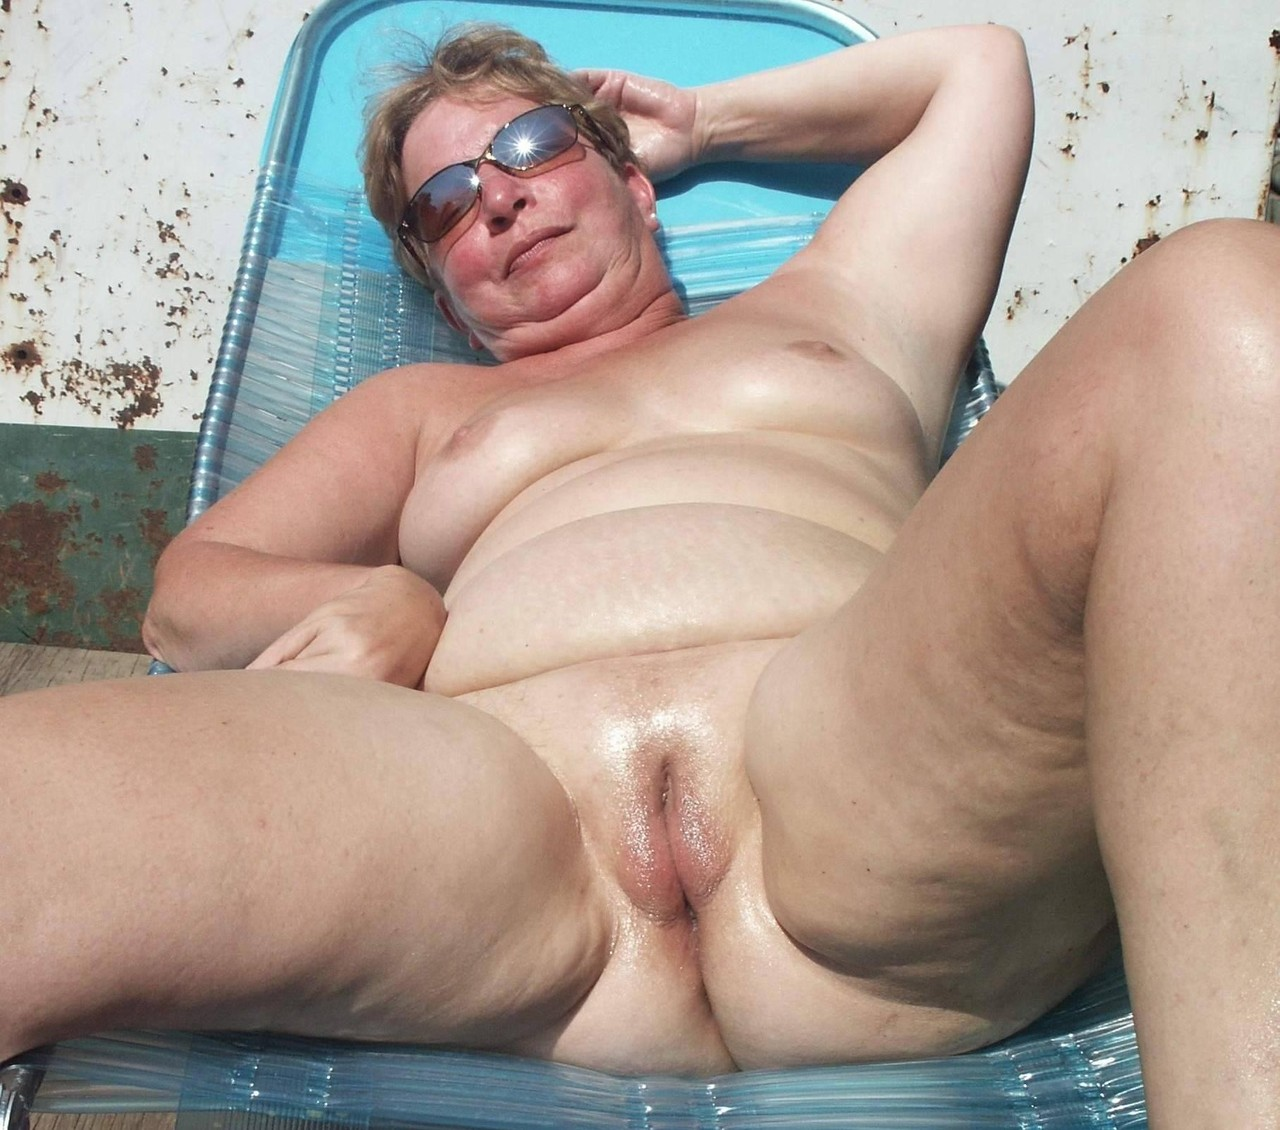 amateur granny cunt tube - sex toys